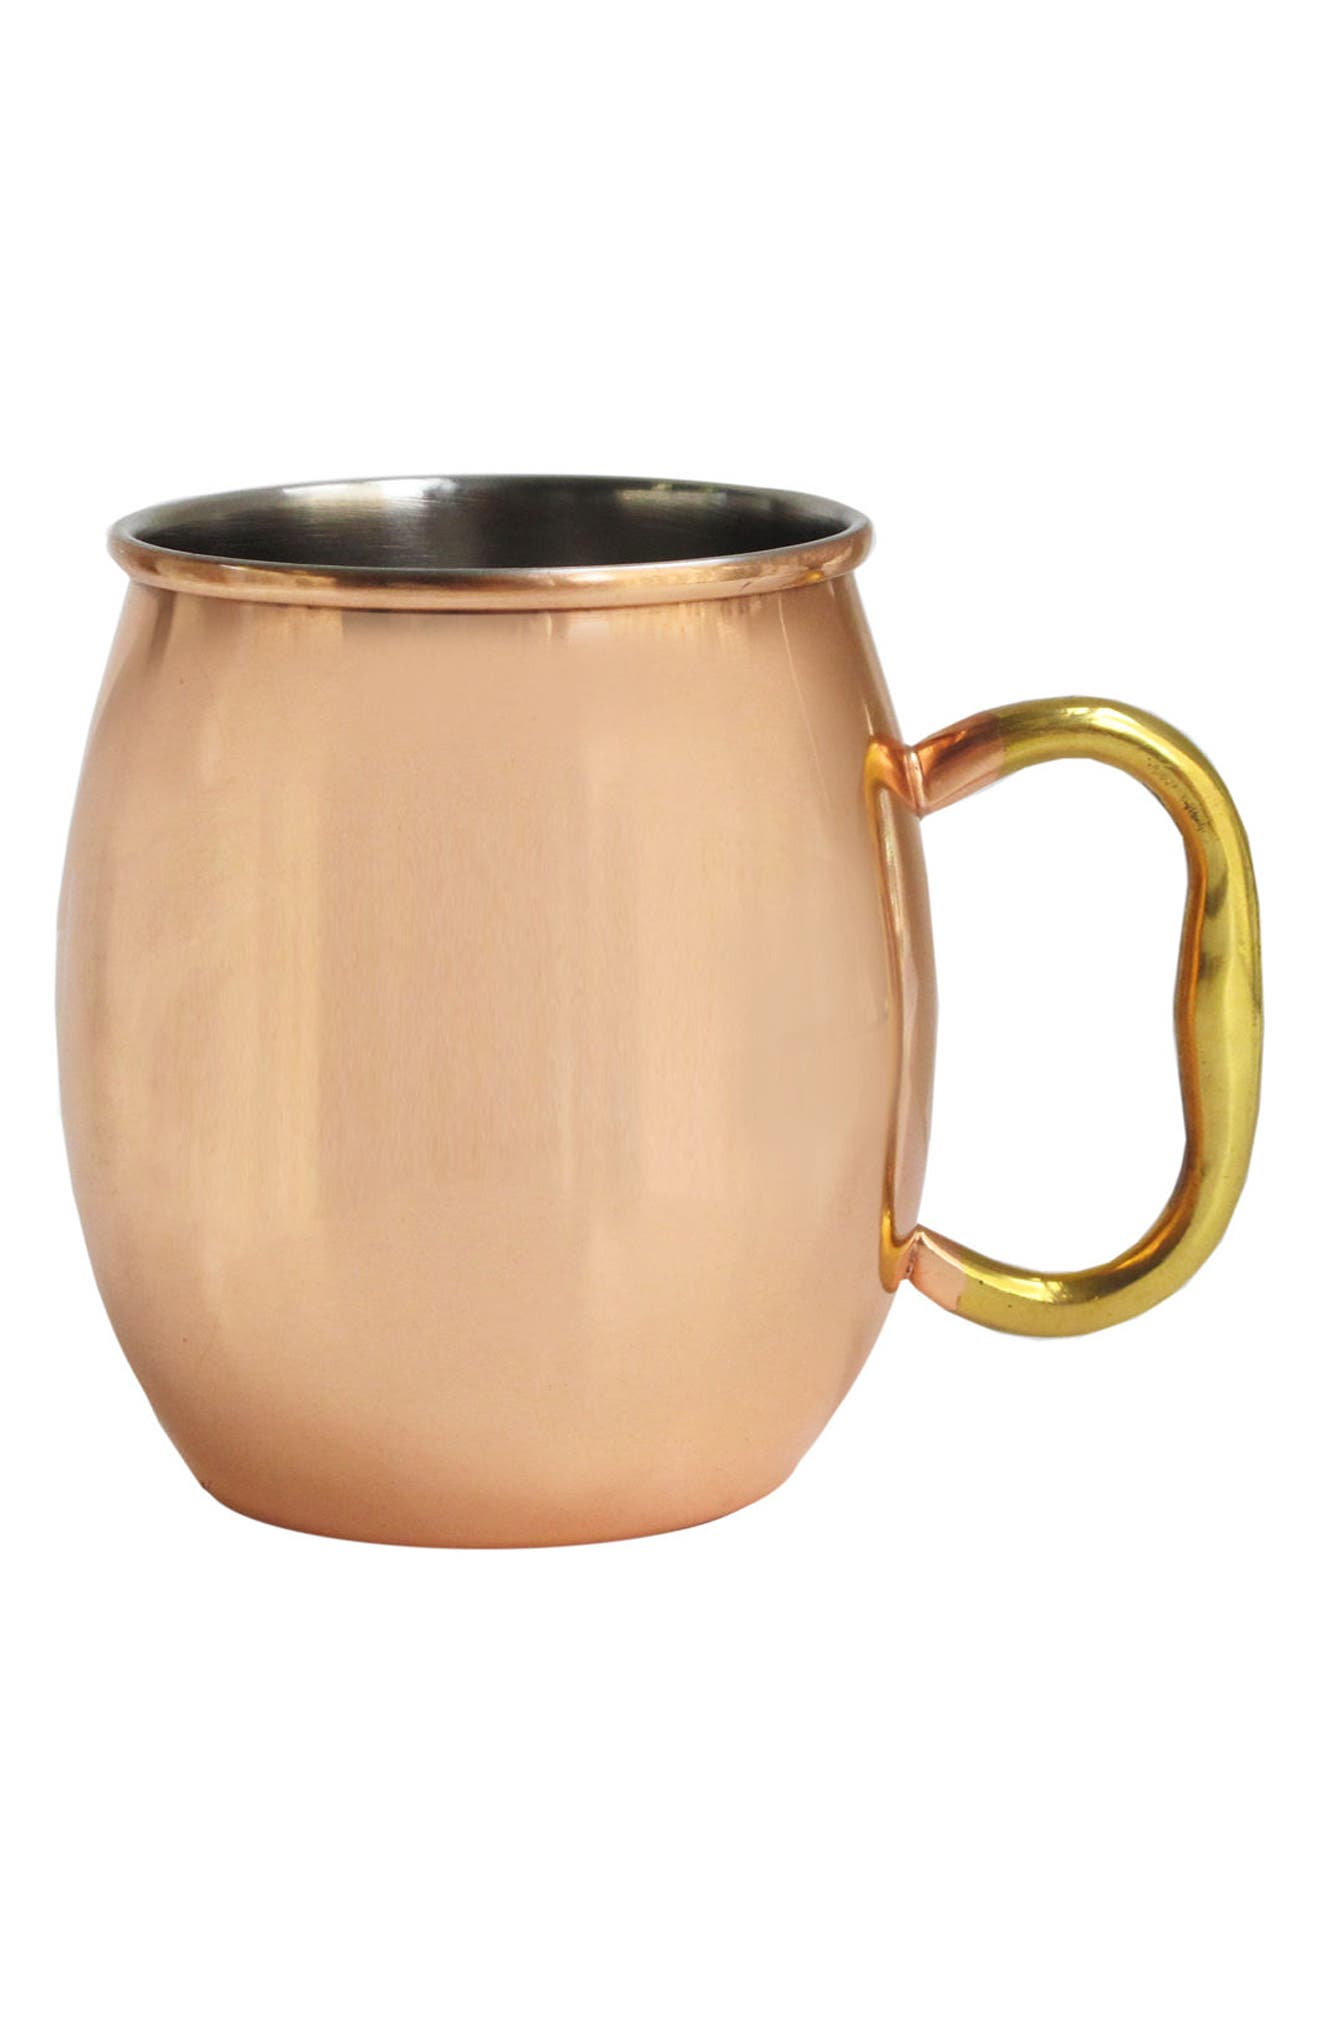 Alternate Image 1 Selected - American Atelier Moscow Mule Mug